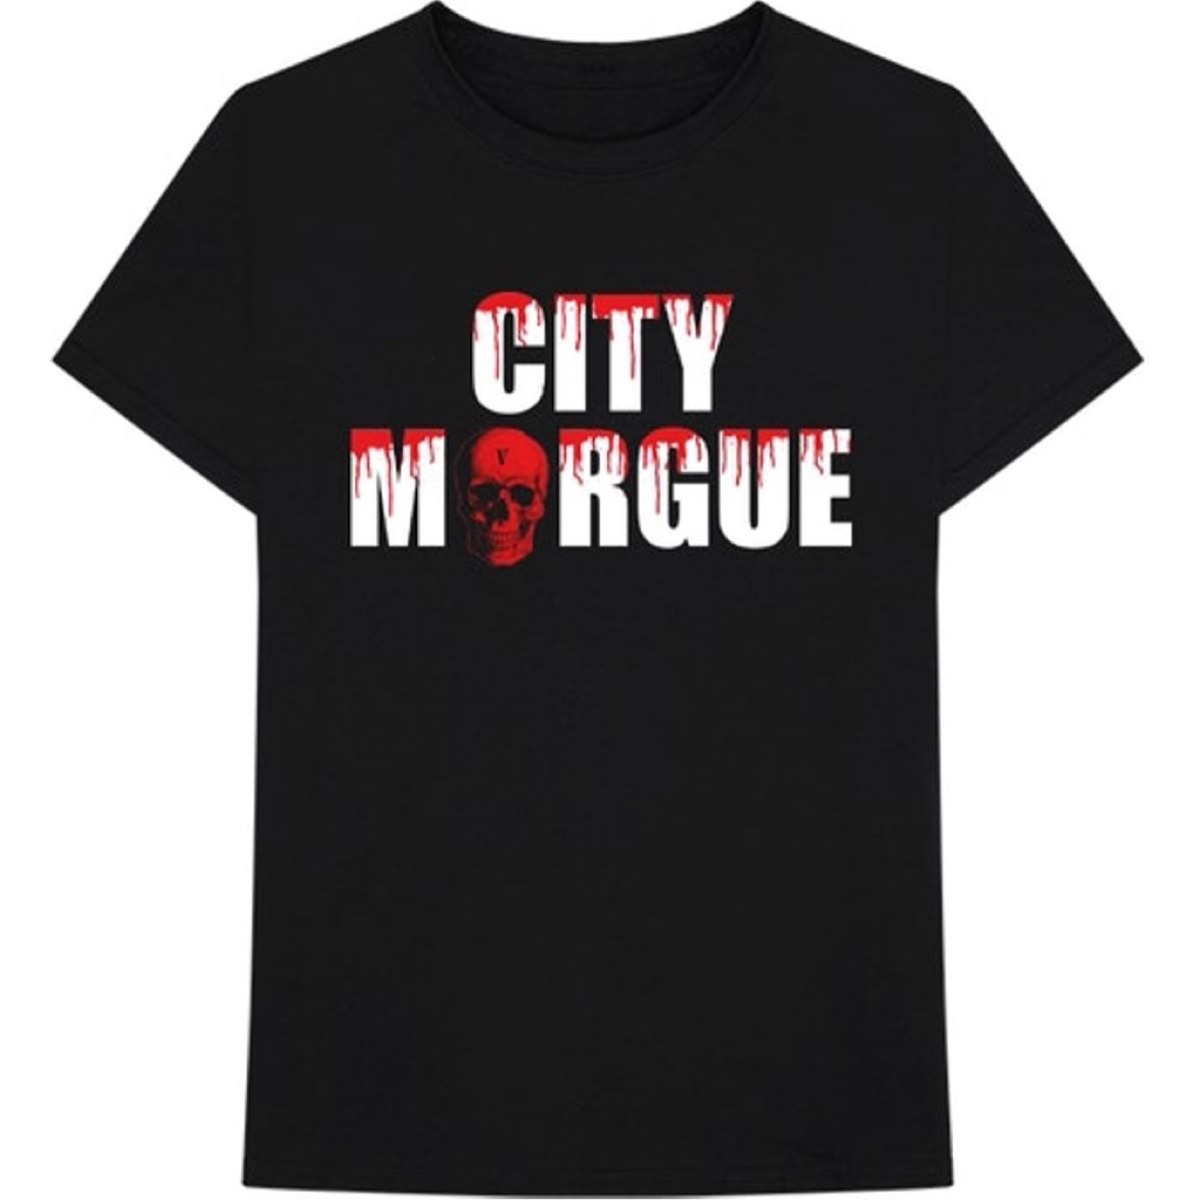 Vlone x City Morgue Drip Black Tee Medium